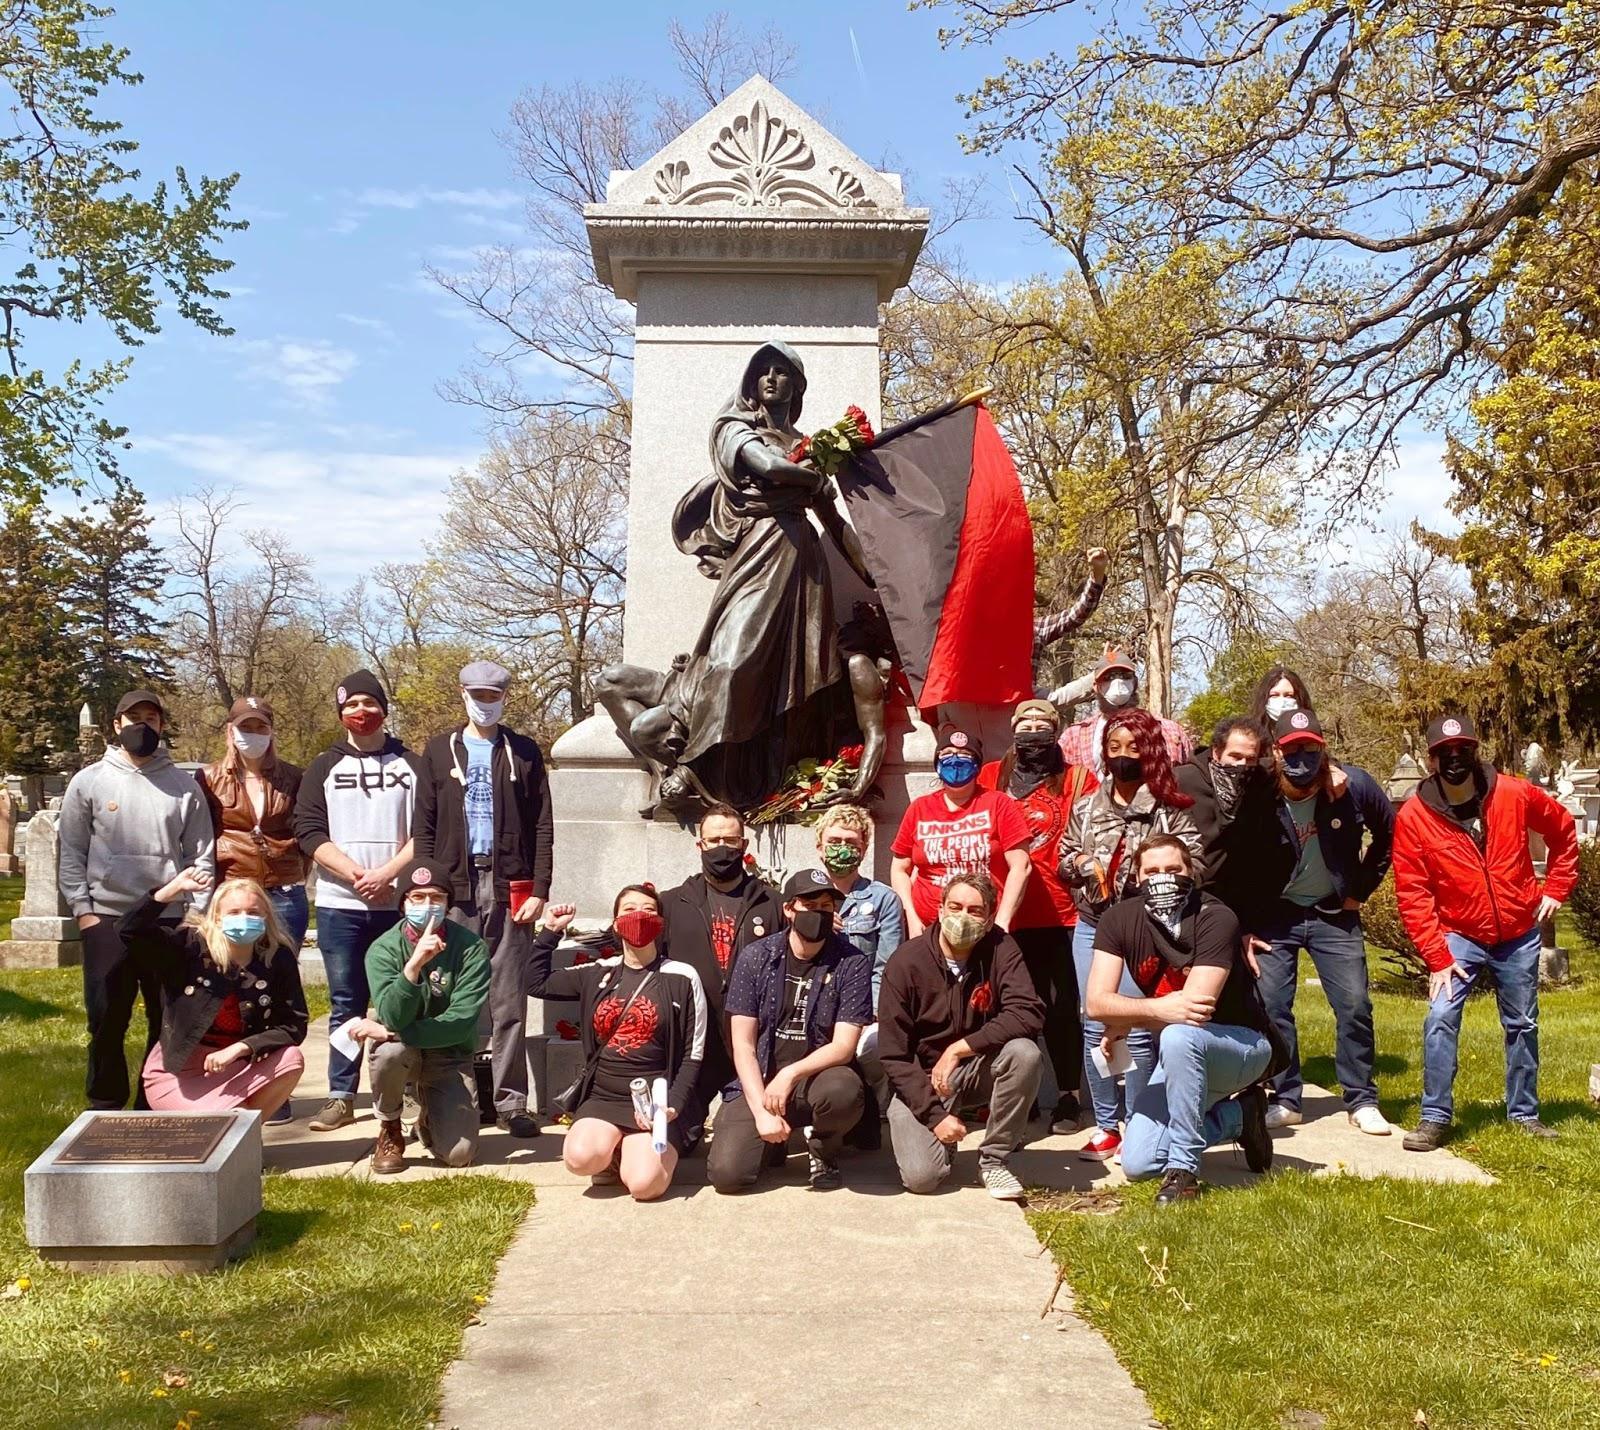 This photo shows some of the Greater Chicago IWW membership at the Haymarket Martyrs Monument